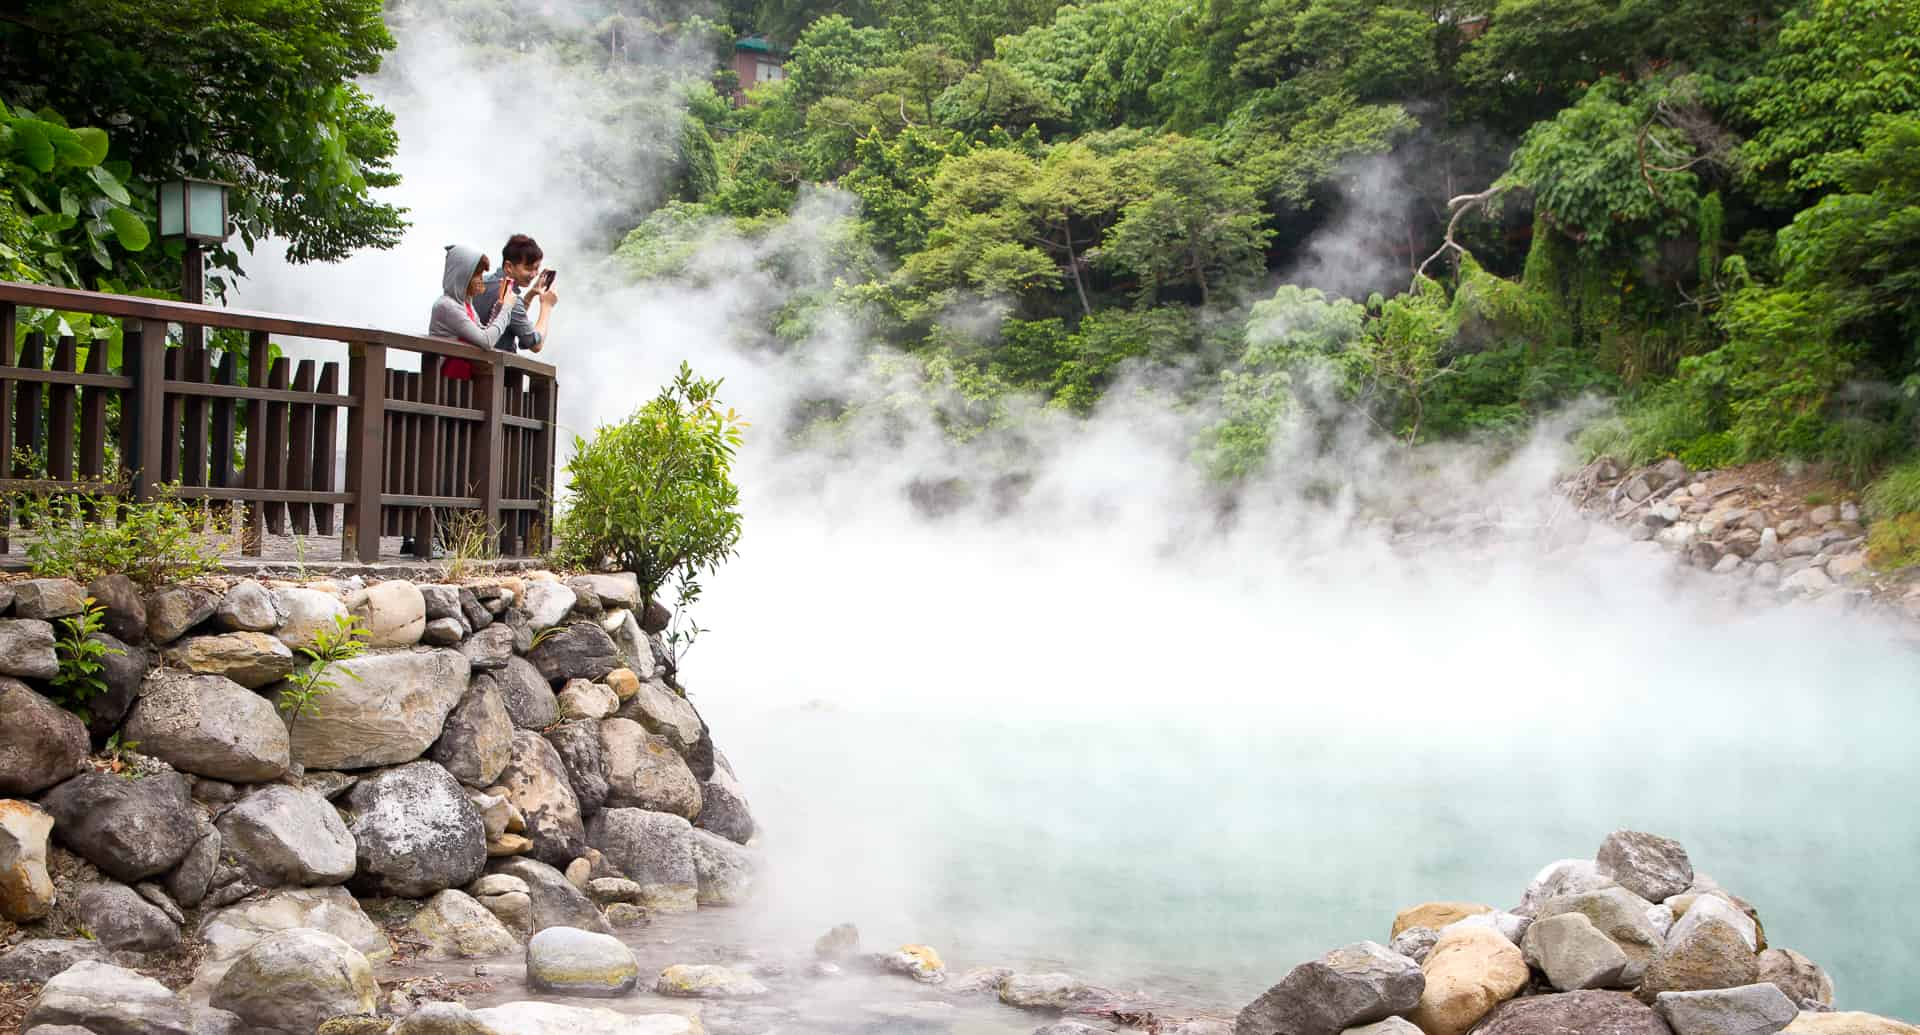 Beitou Hot Spring & Thermal Valley: A Detailed 2020 Guide